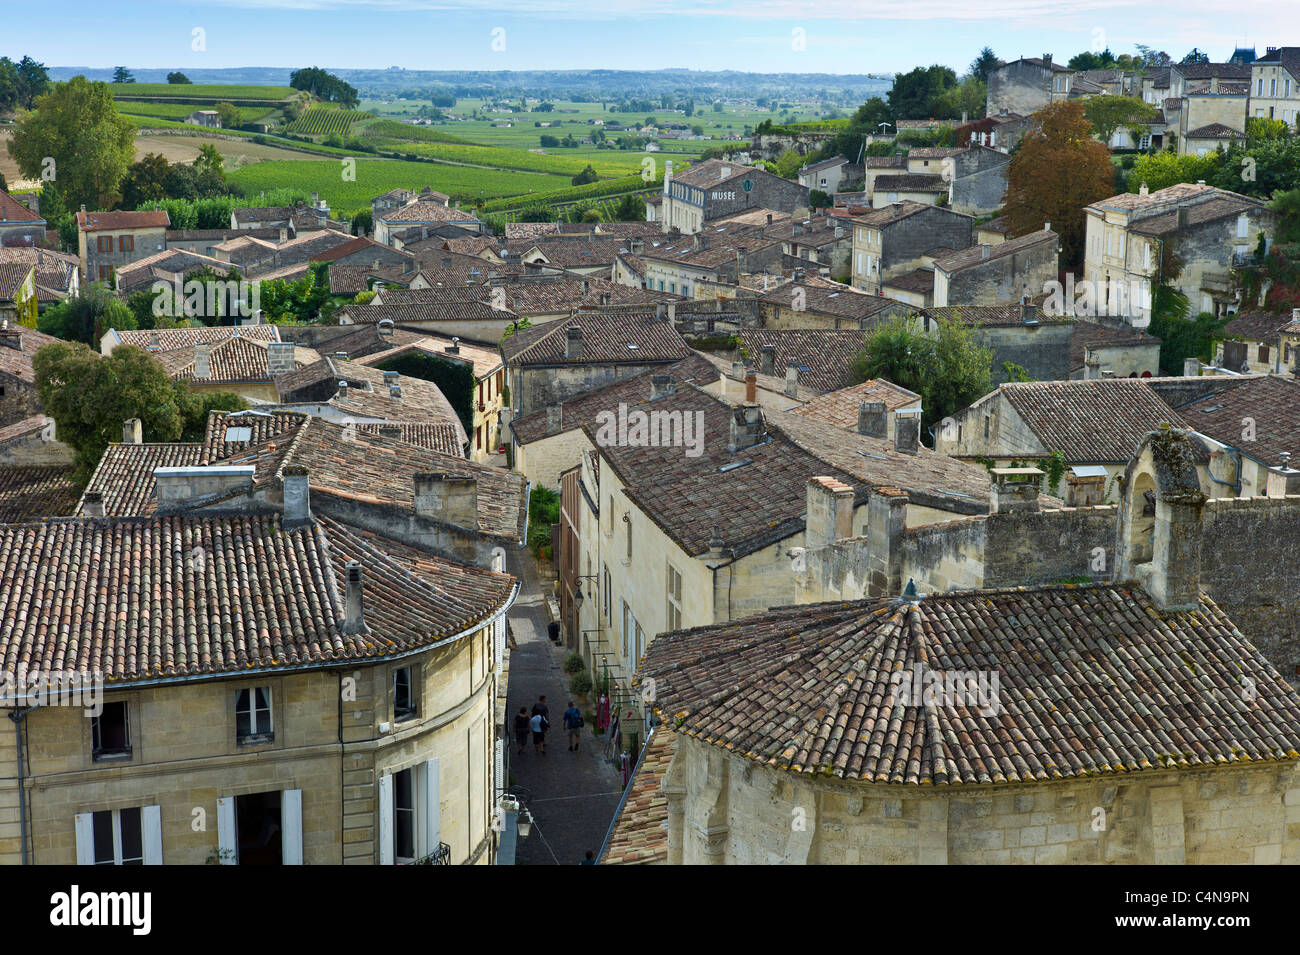 Rooftops of St Emilion in the Bordeaux region of France - Stock Image